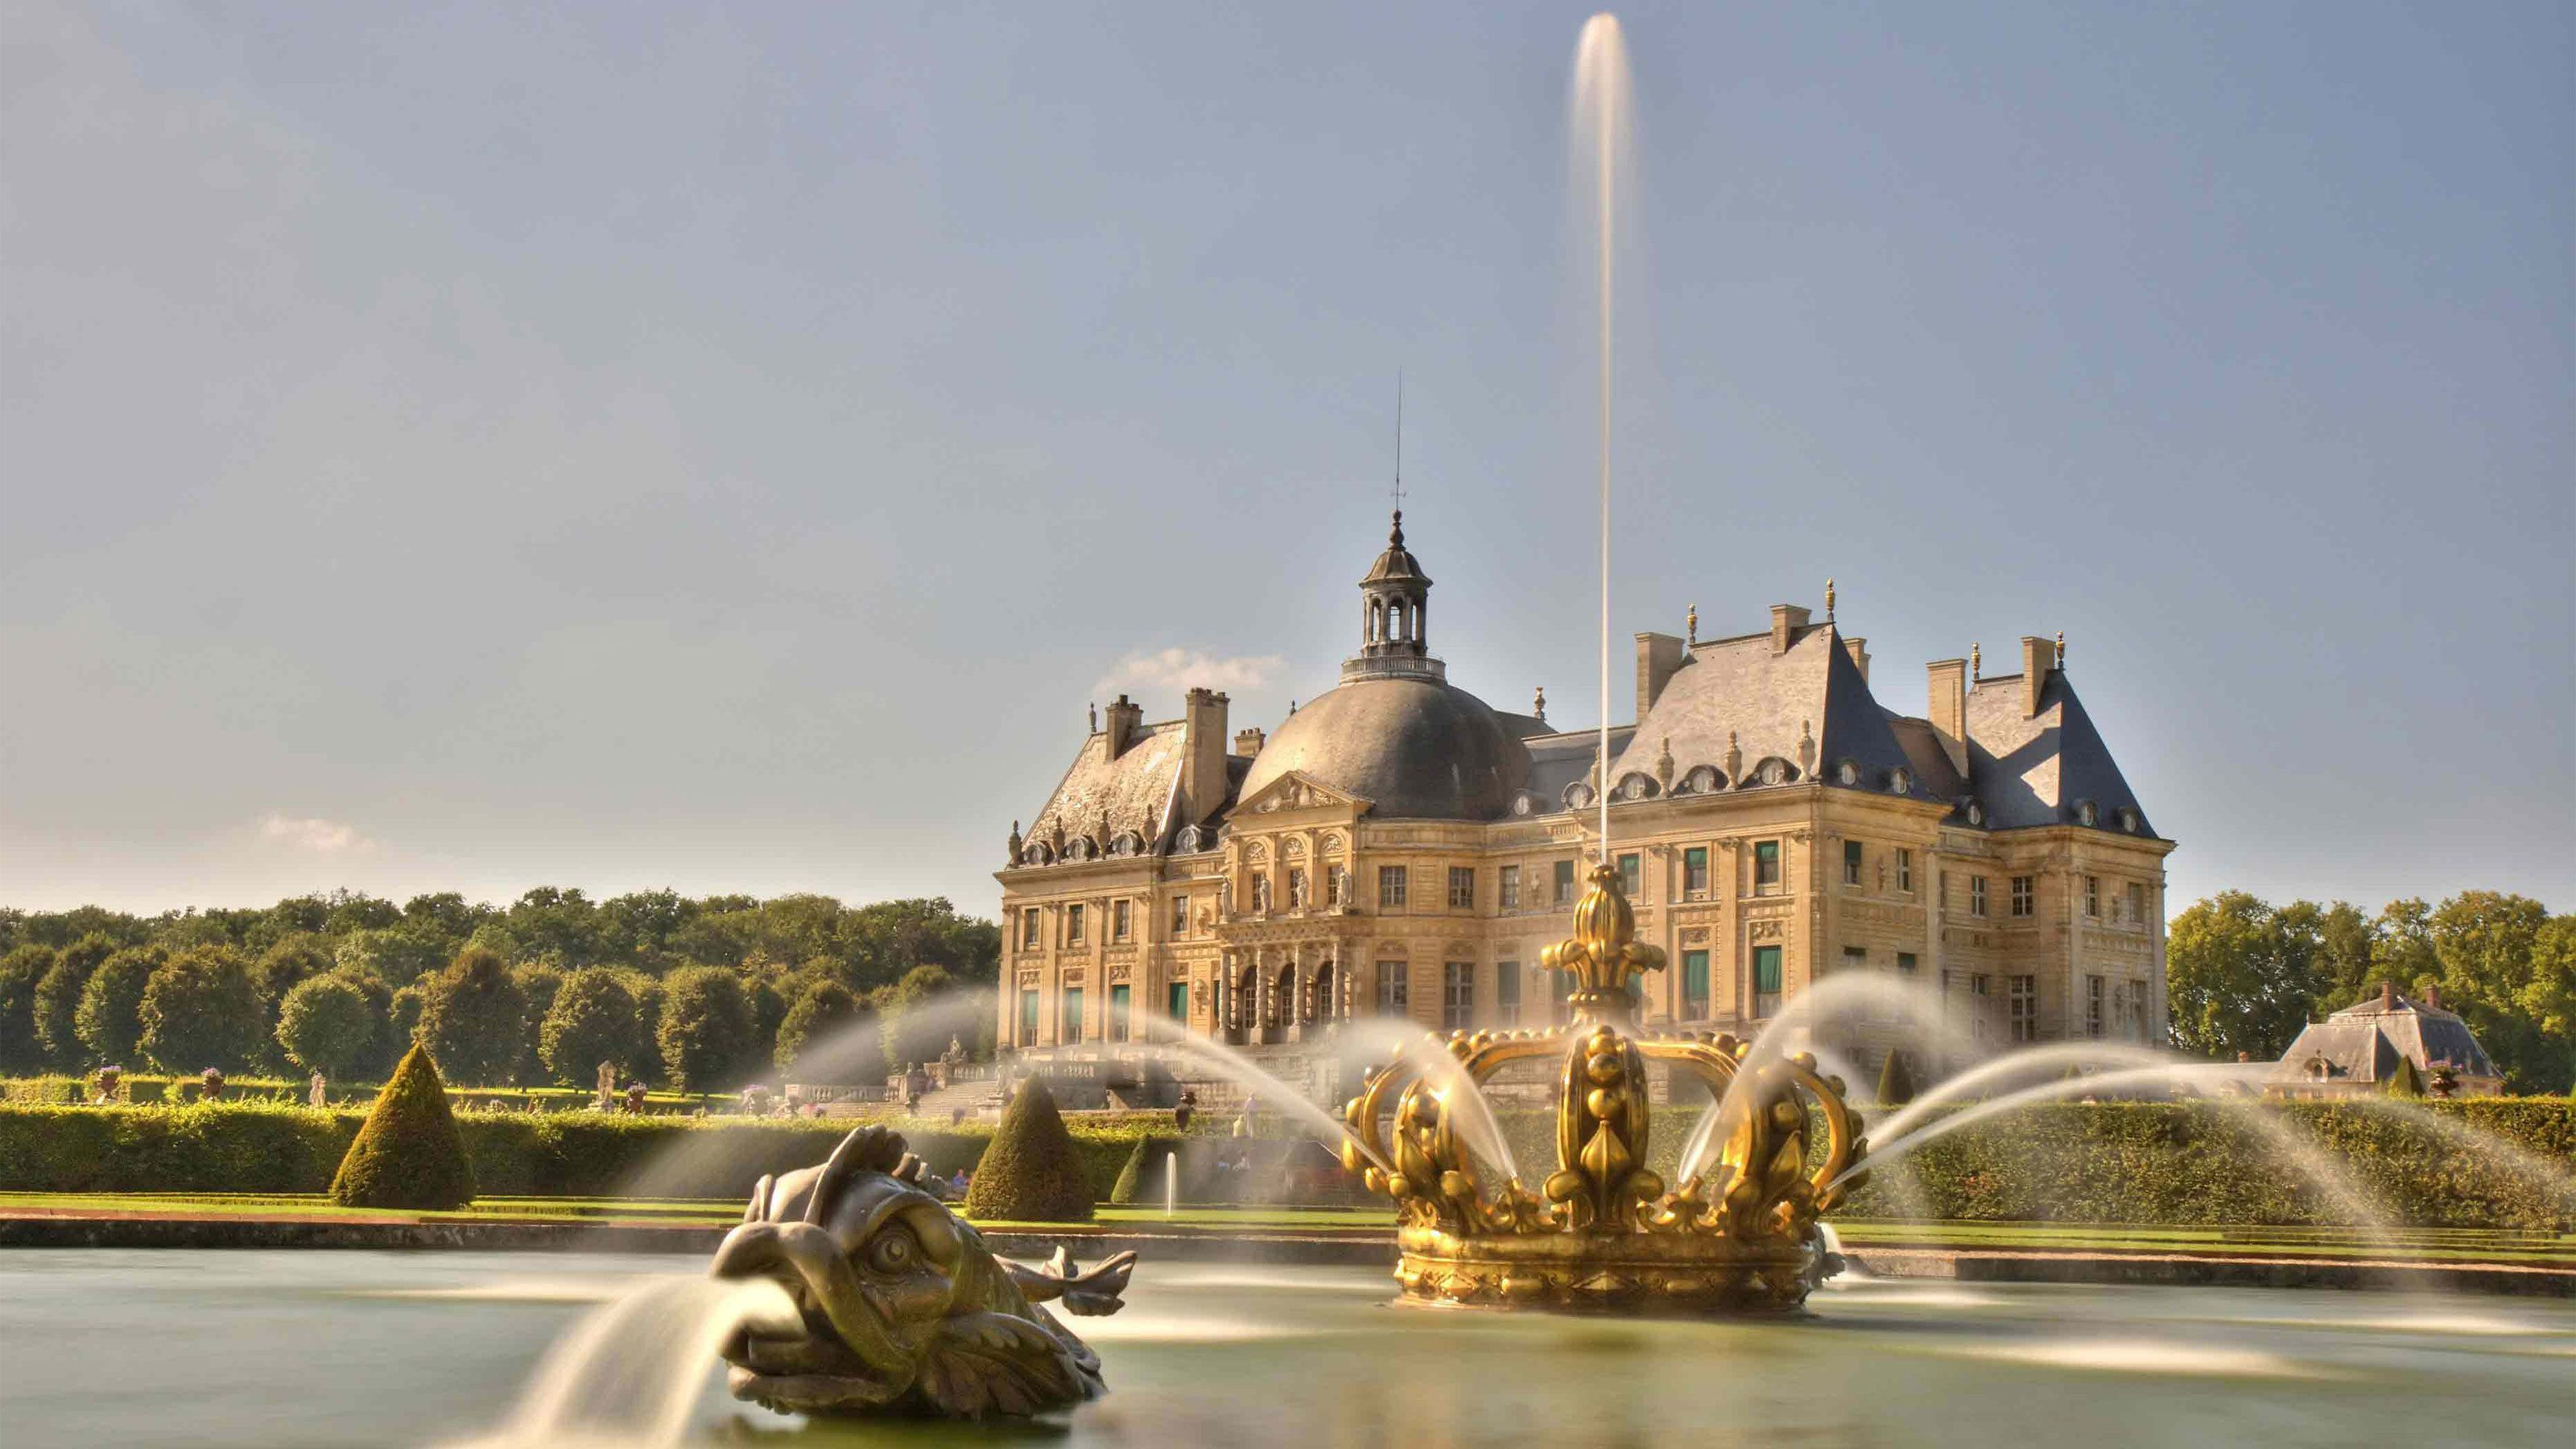 Fontainebleau & Vaux-le-Vicomte Castles Full-Day Tour